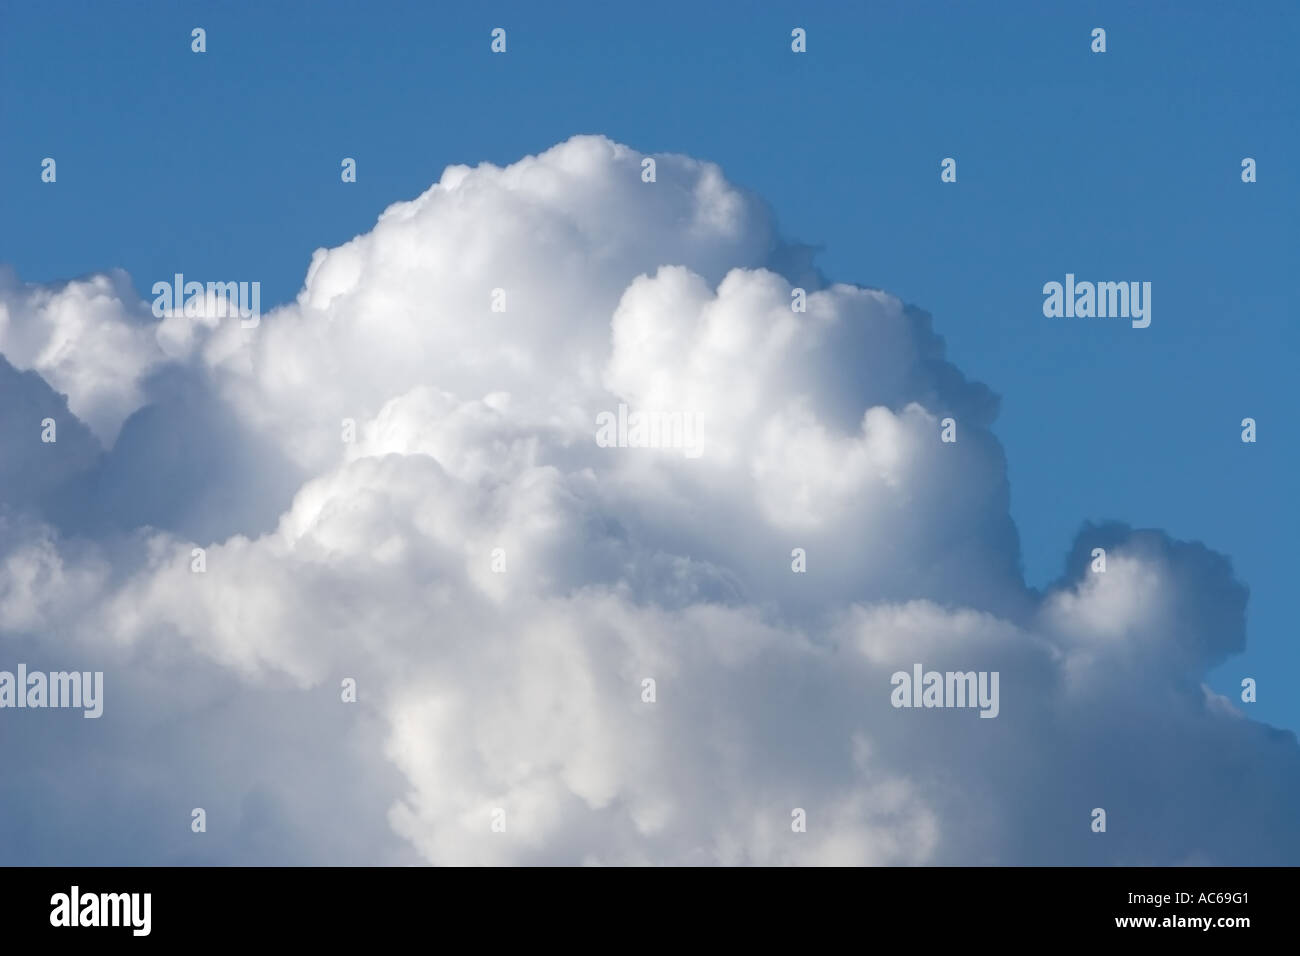 Close-up of white rising cloud on blue sky - Stock Image